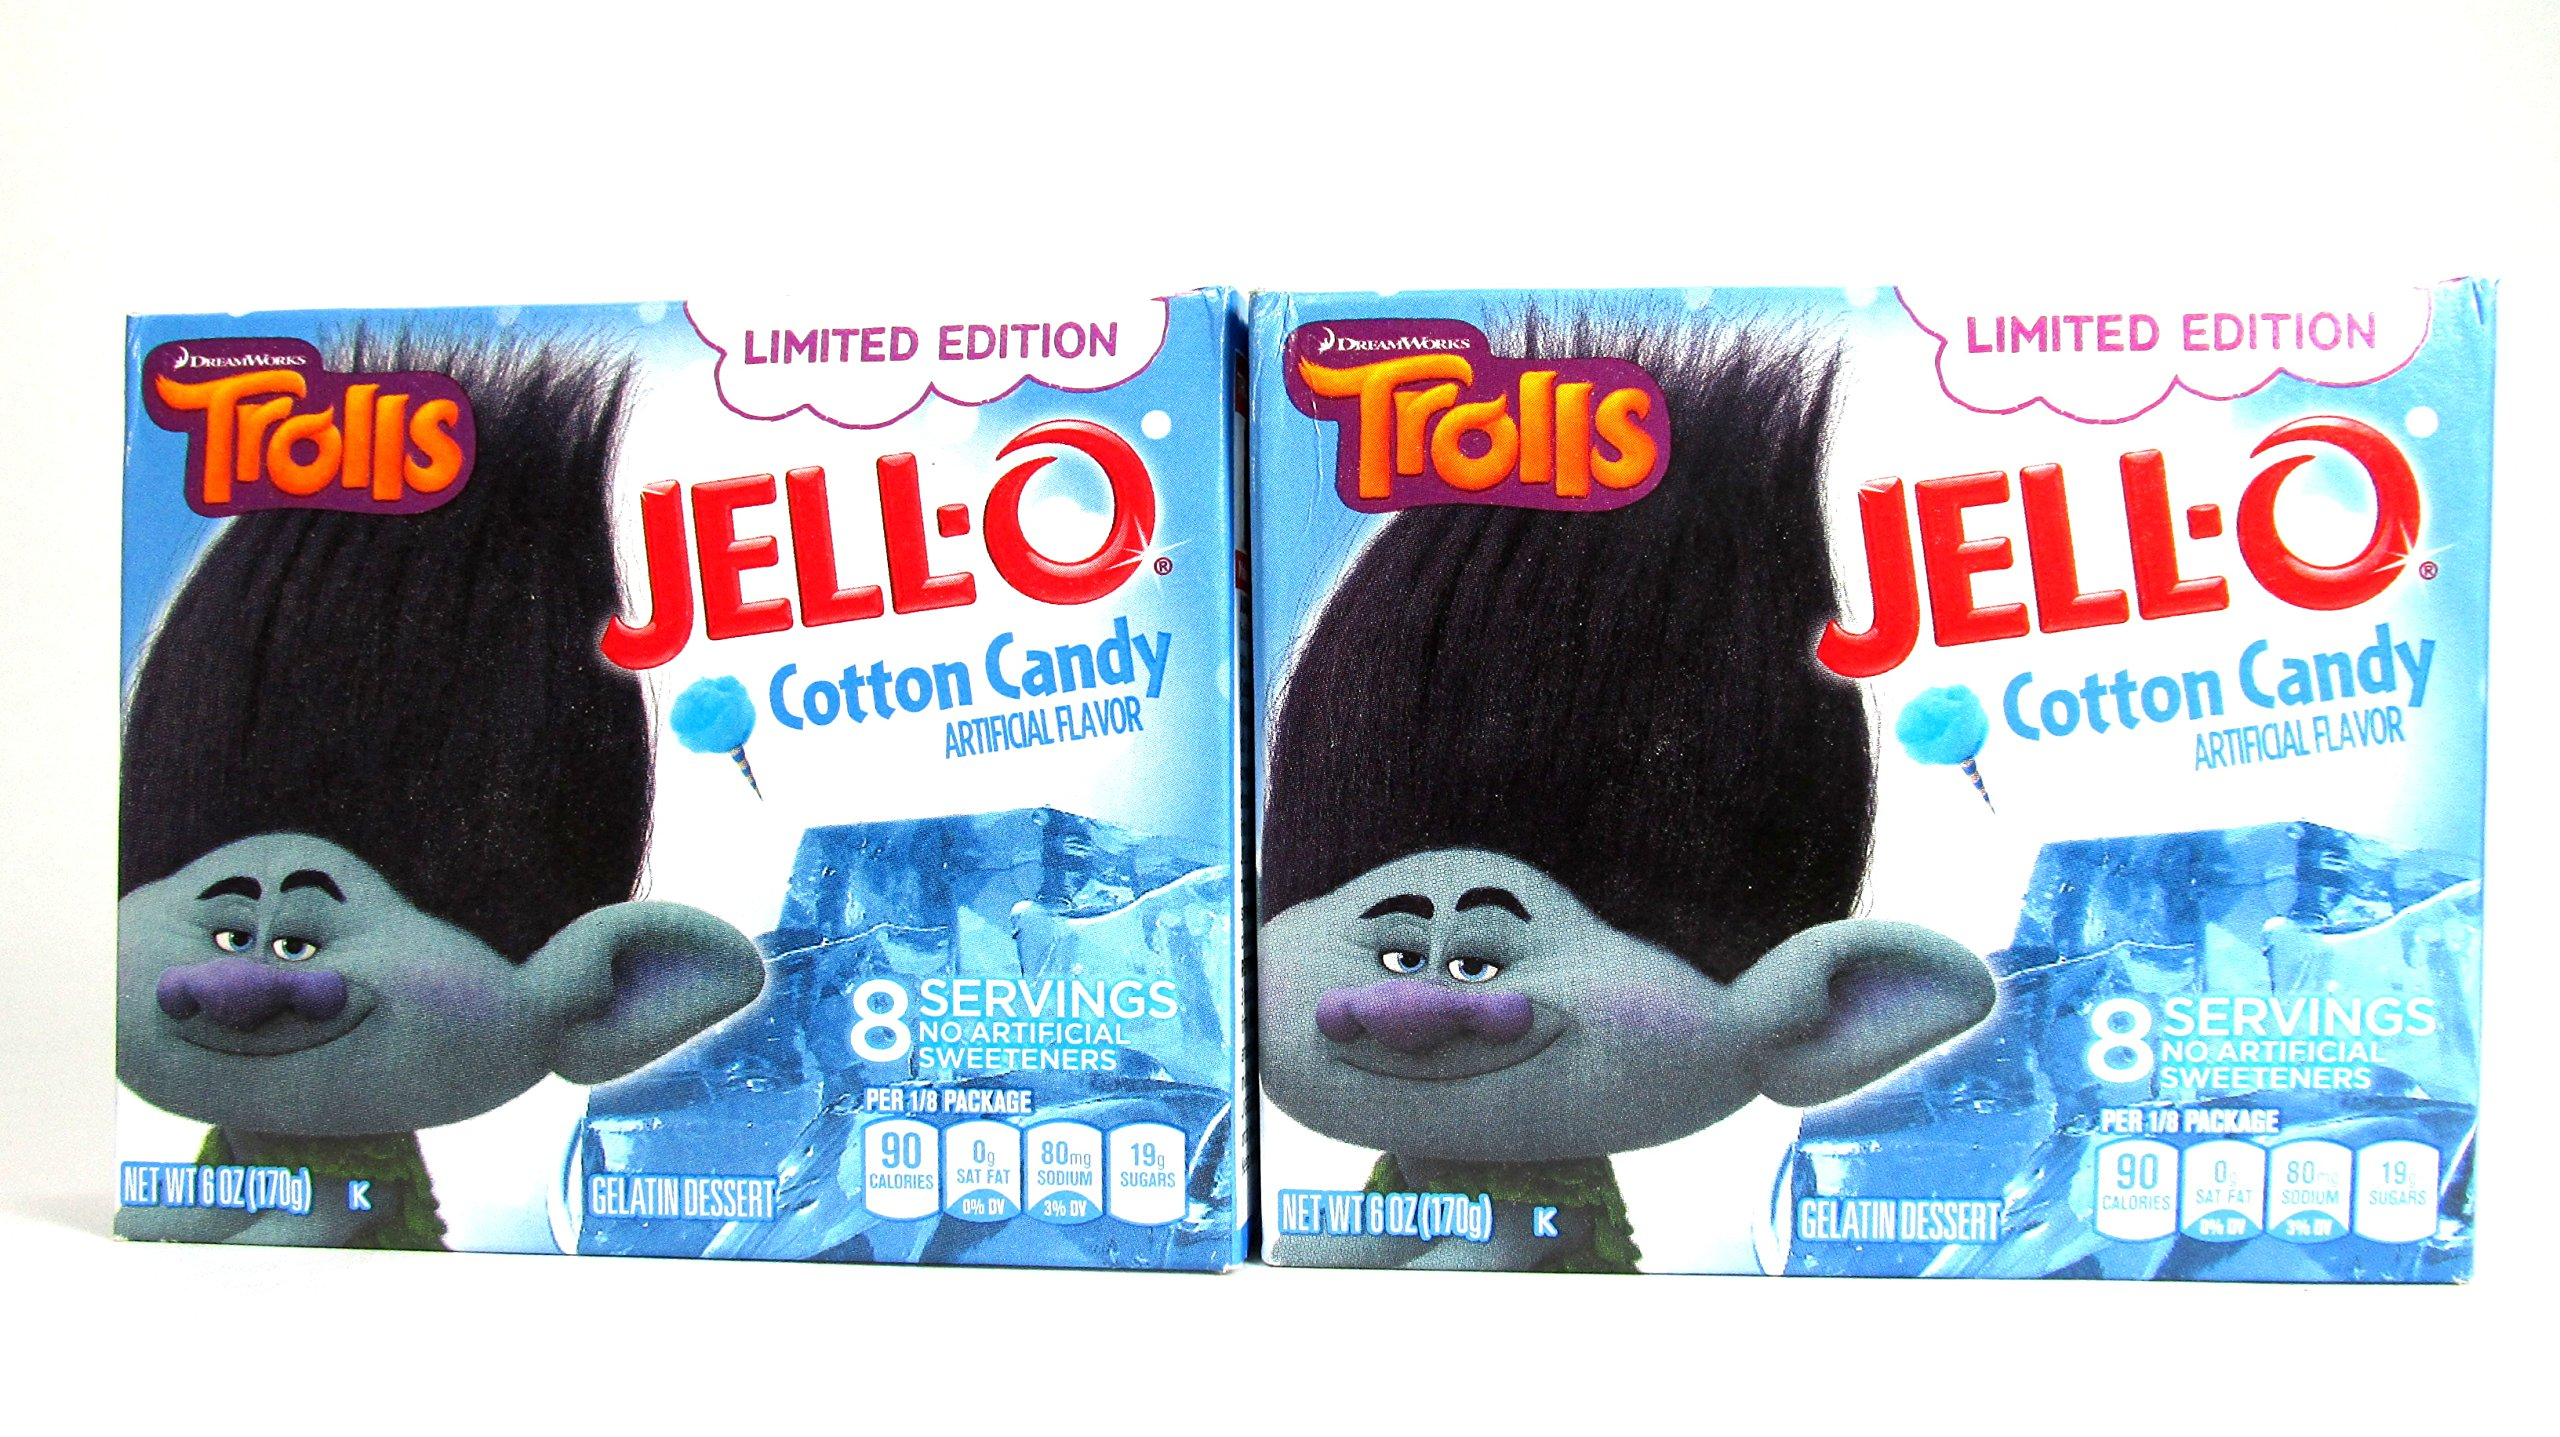 Jell-O Dreamworks Trolls Limited Edition Cotton Candy Gelatin (Cotton Candy, 2)